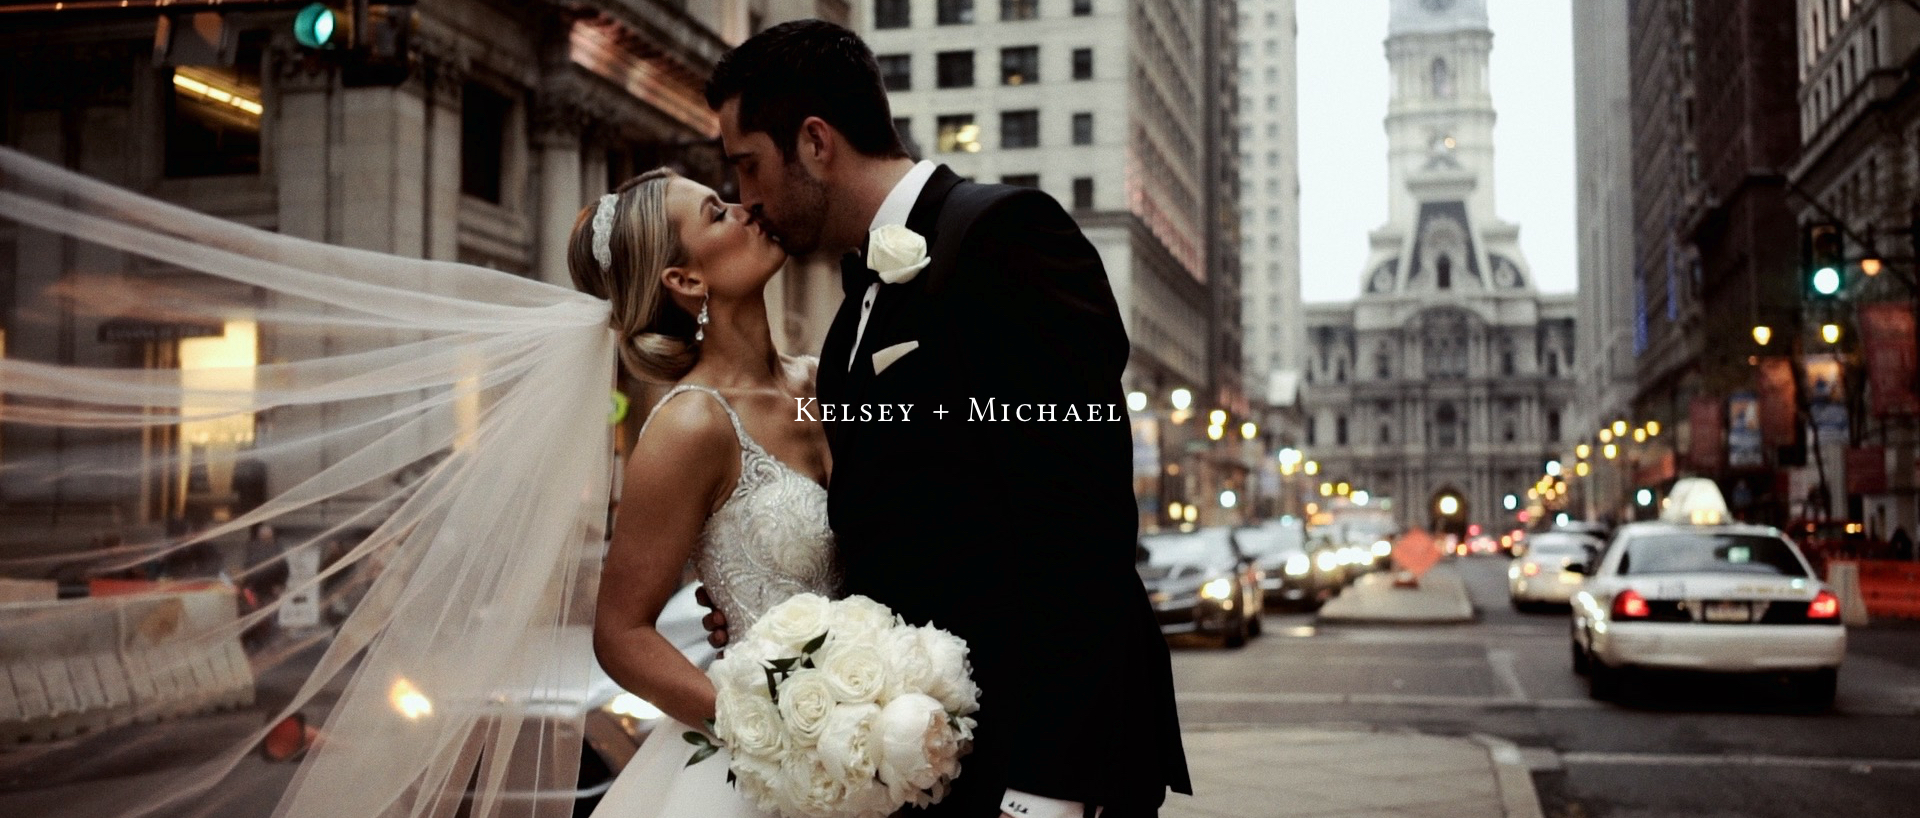 Kelsey-and-Michael.jpg